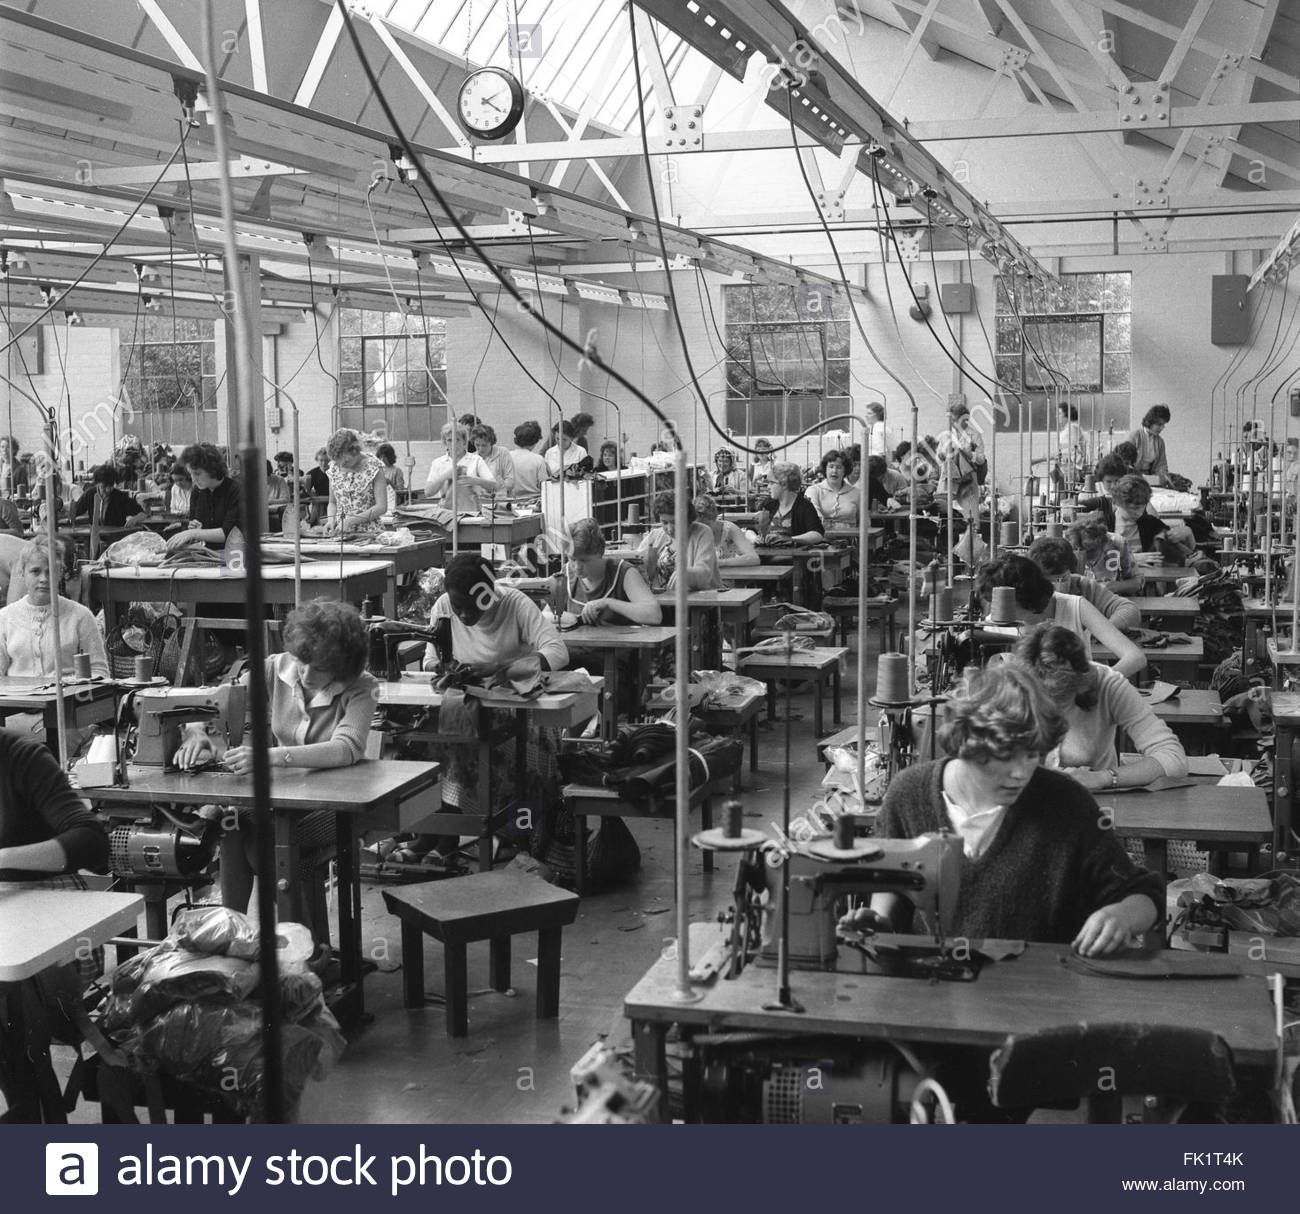 Women Workers Working In Clothing Factory 1960s Britain Rag Trade Factory Stock Photo 1960s Britain Stock Photos Photo